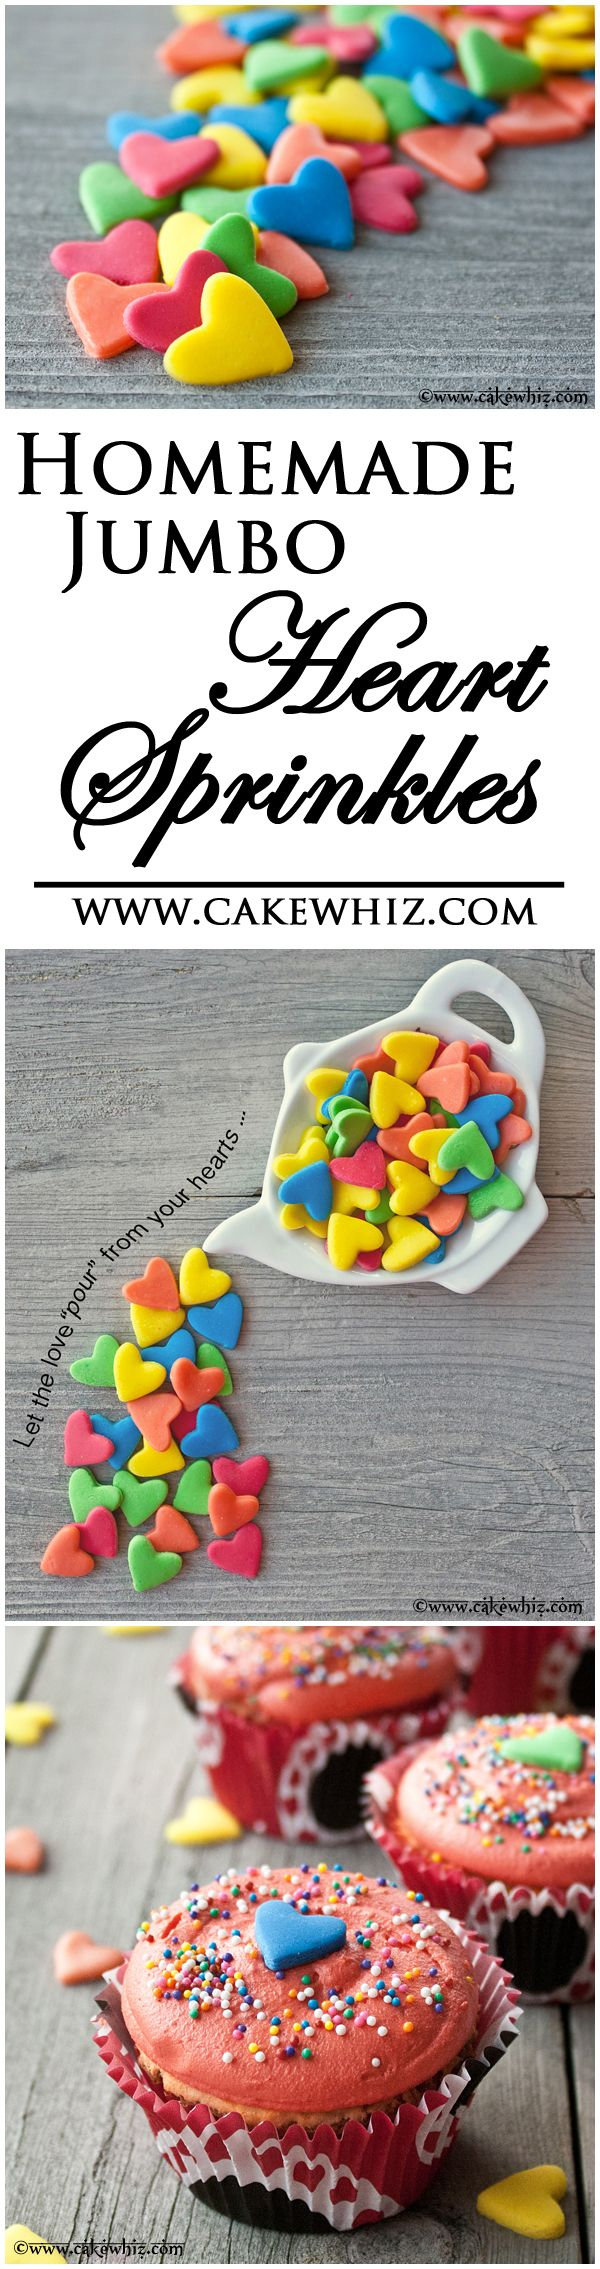 HOMEMADE JUMBO HEART SPRINKLES ... easiest and cheapest things you will ever make and you can make them in any color you like! From cakewhiz.com